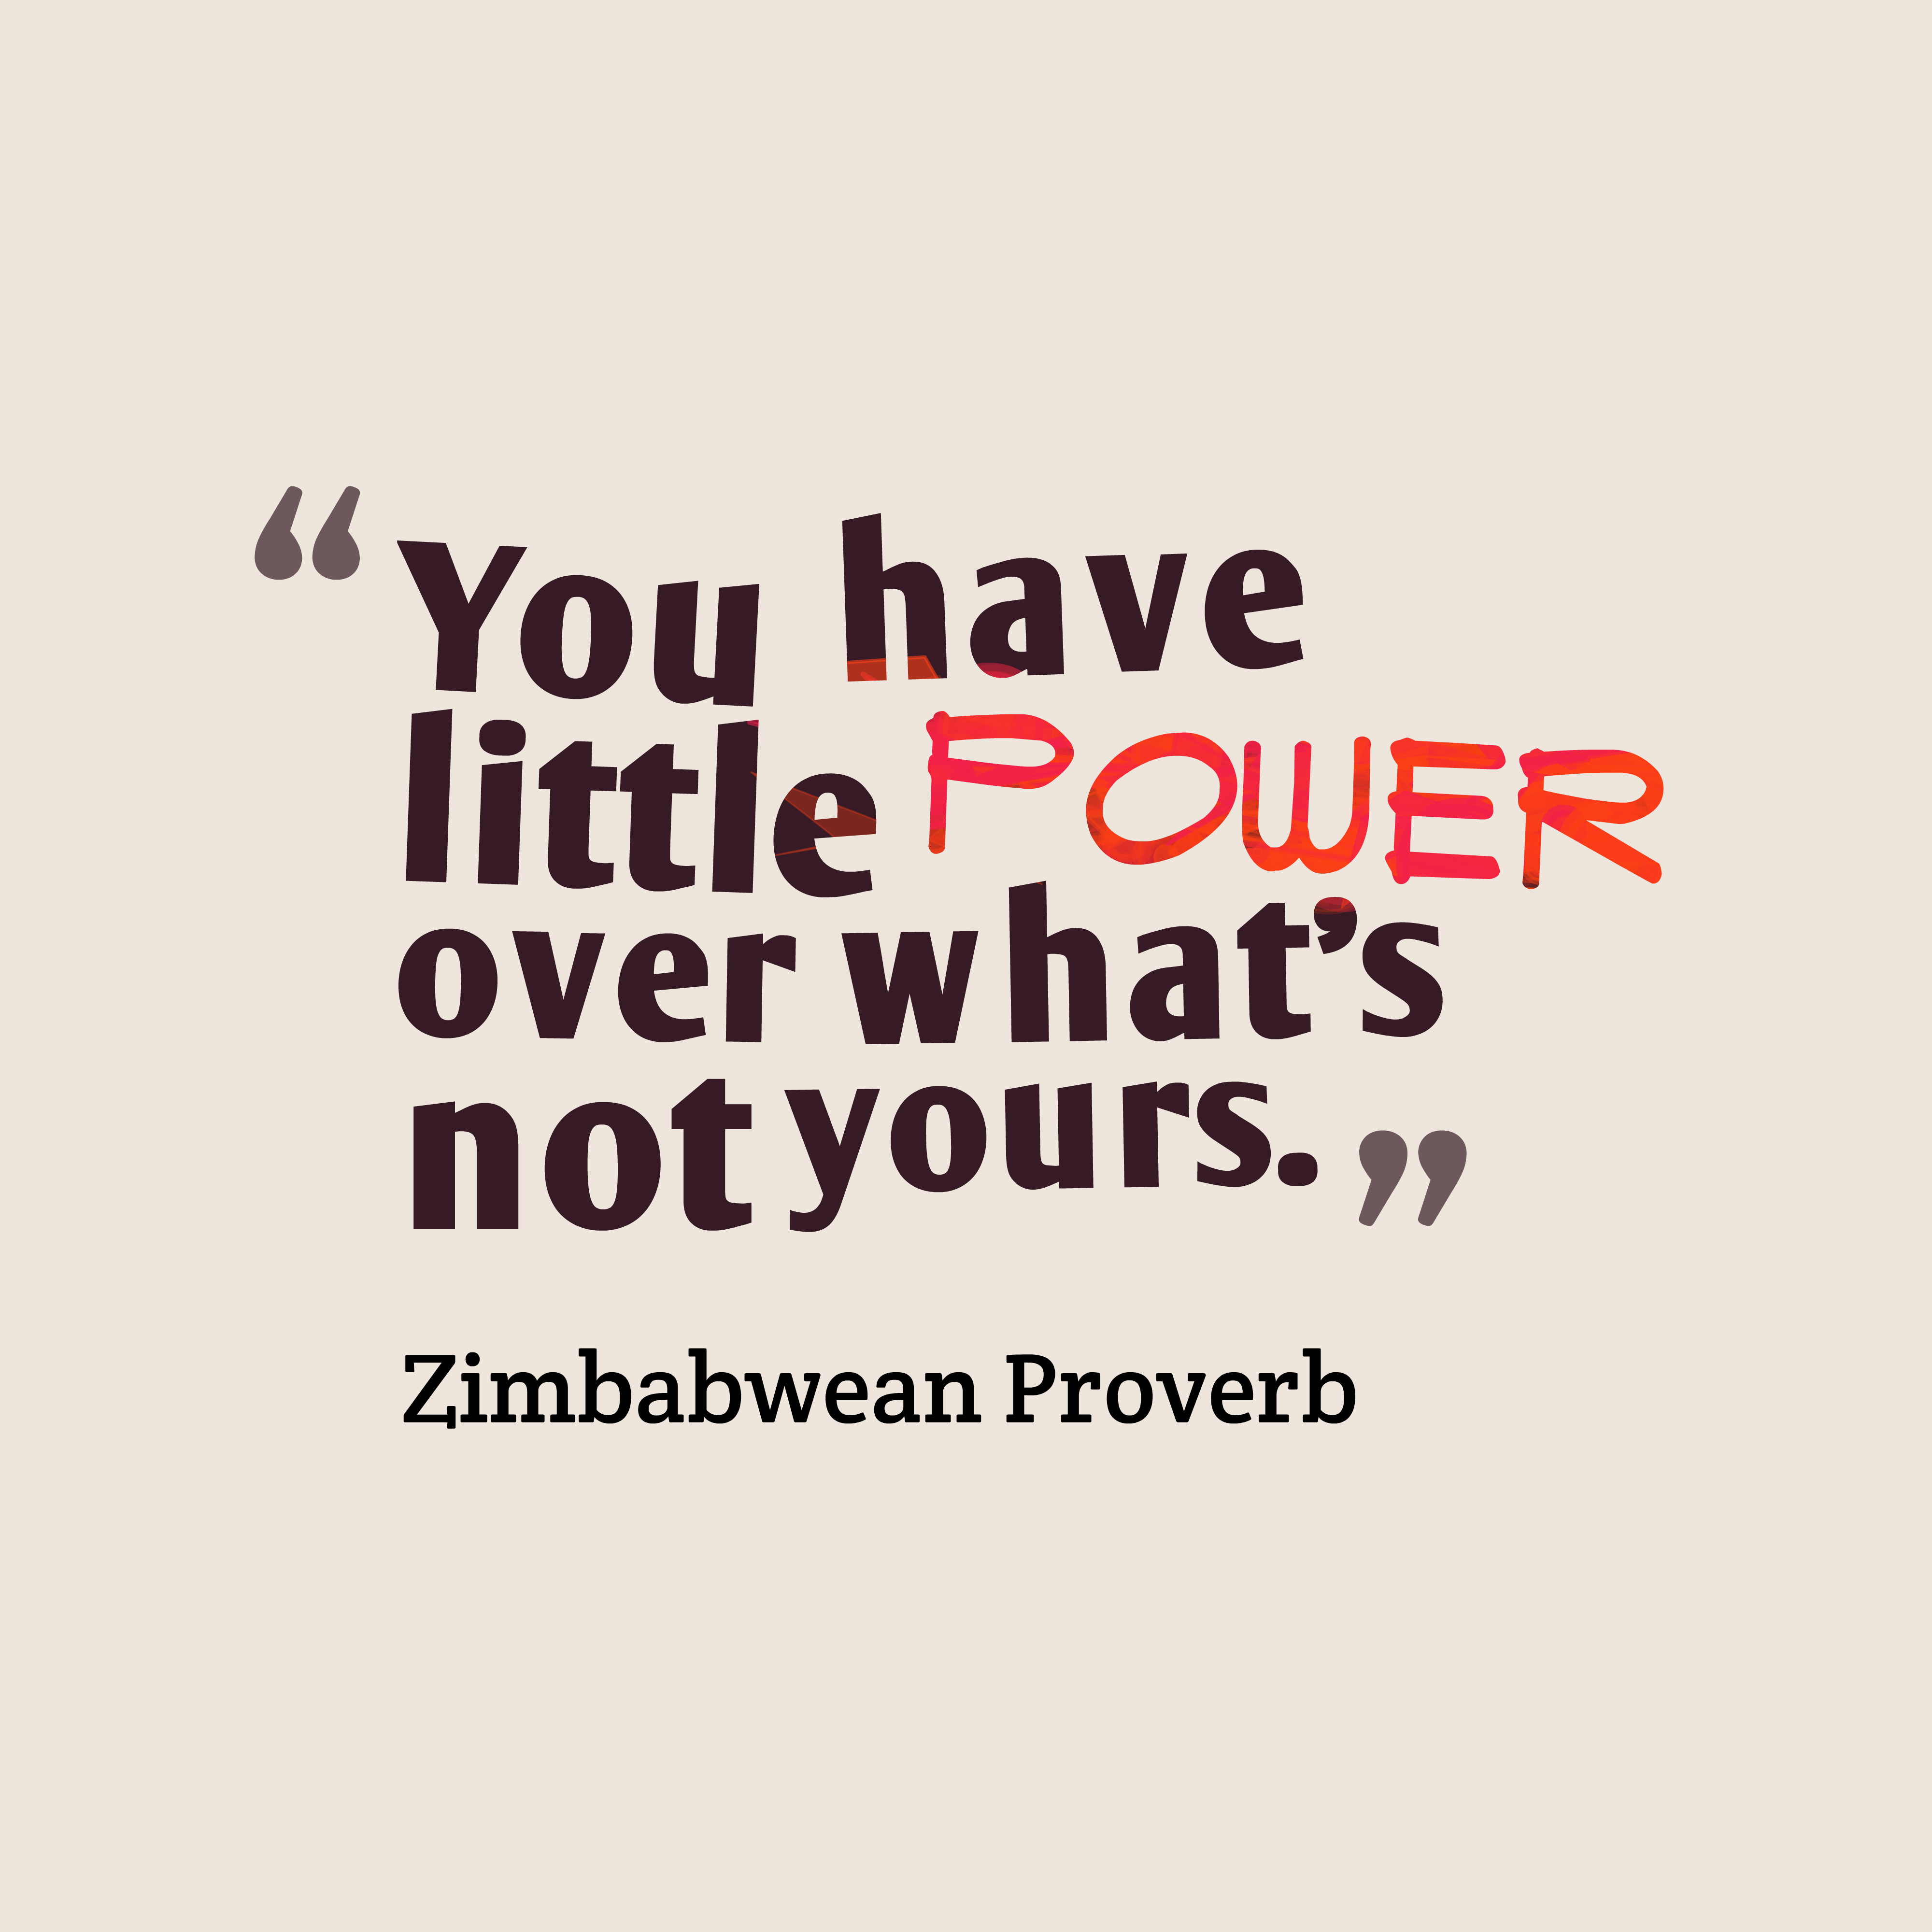 Quotes image of You have little power over what's not yours.